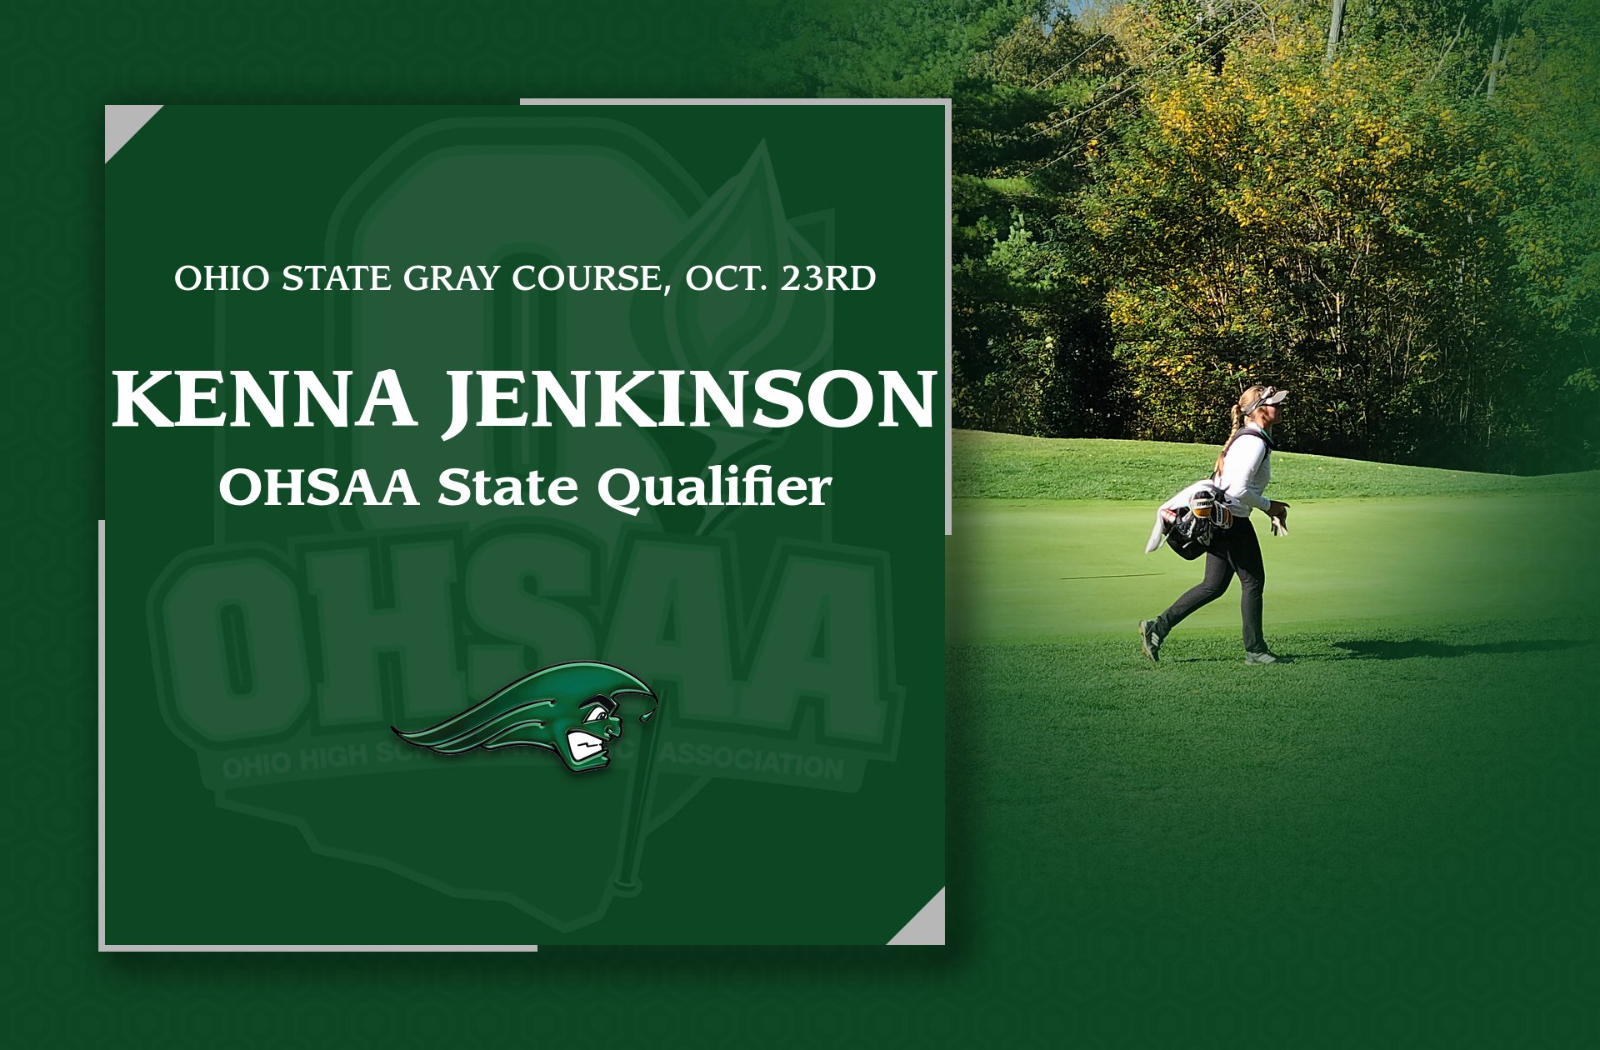 Jenkinson Qualifies for OHSAA State Golf Tournament!